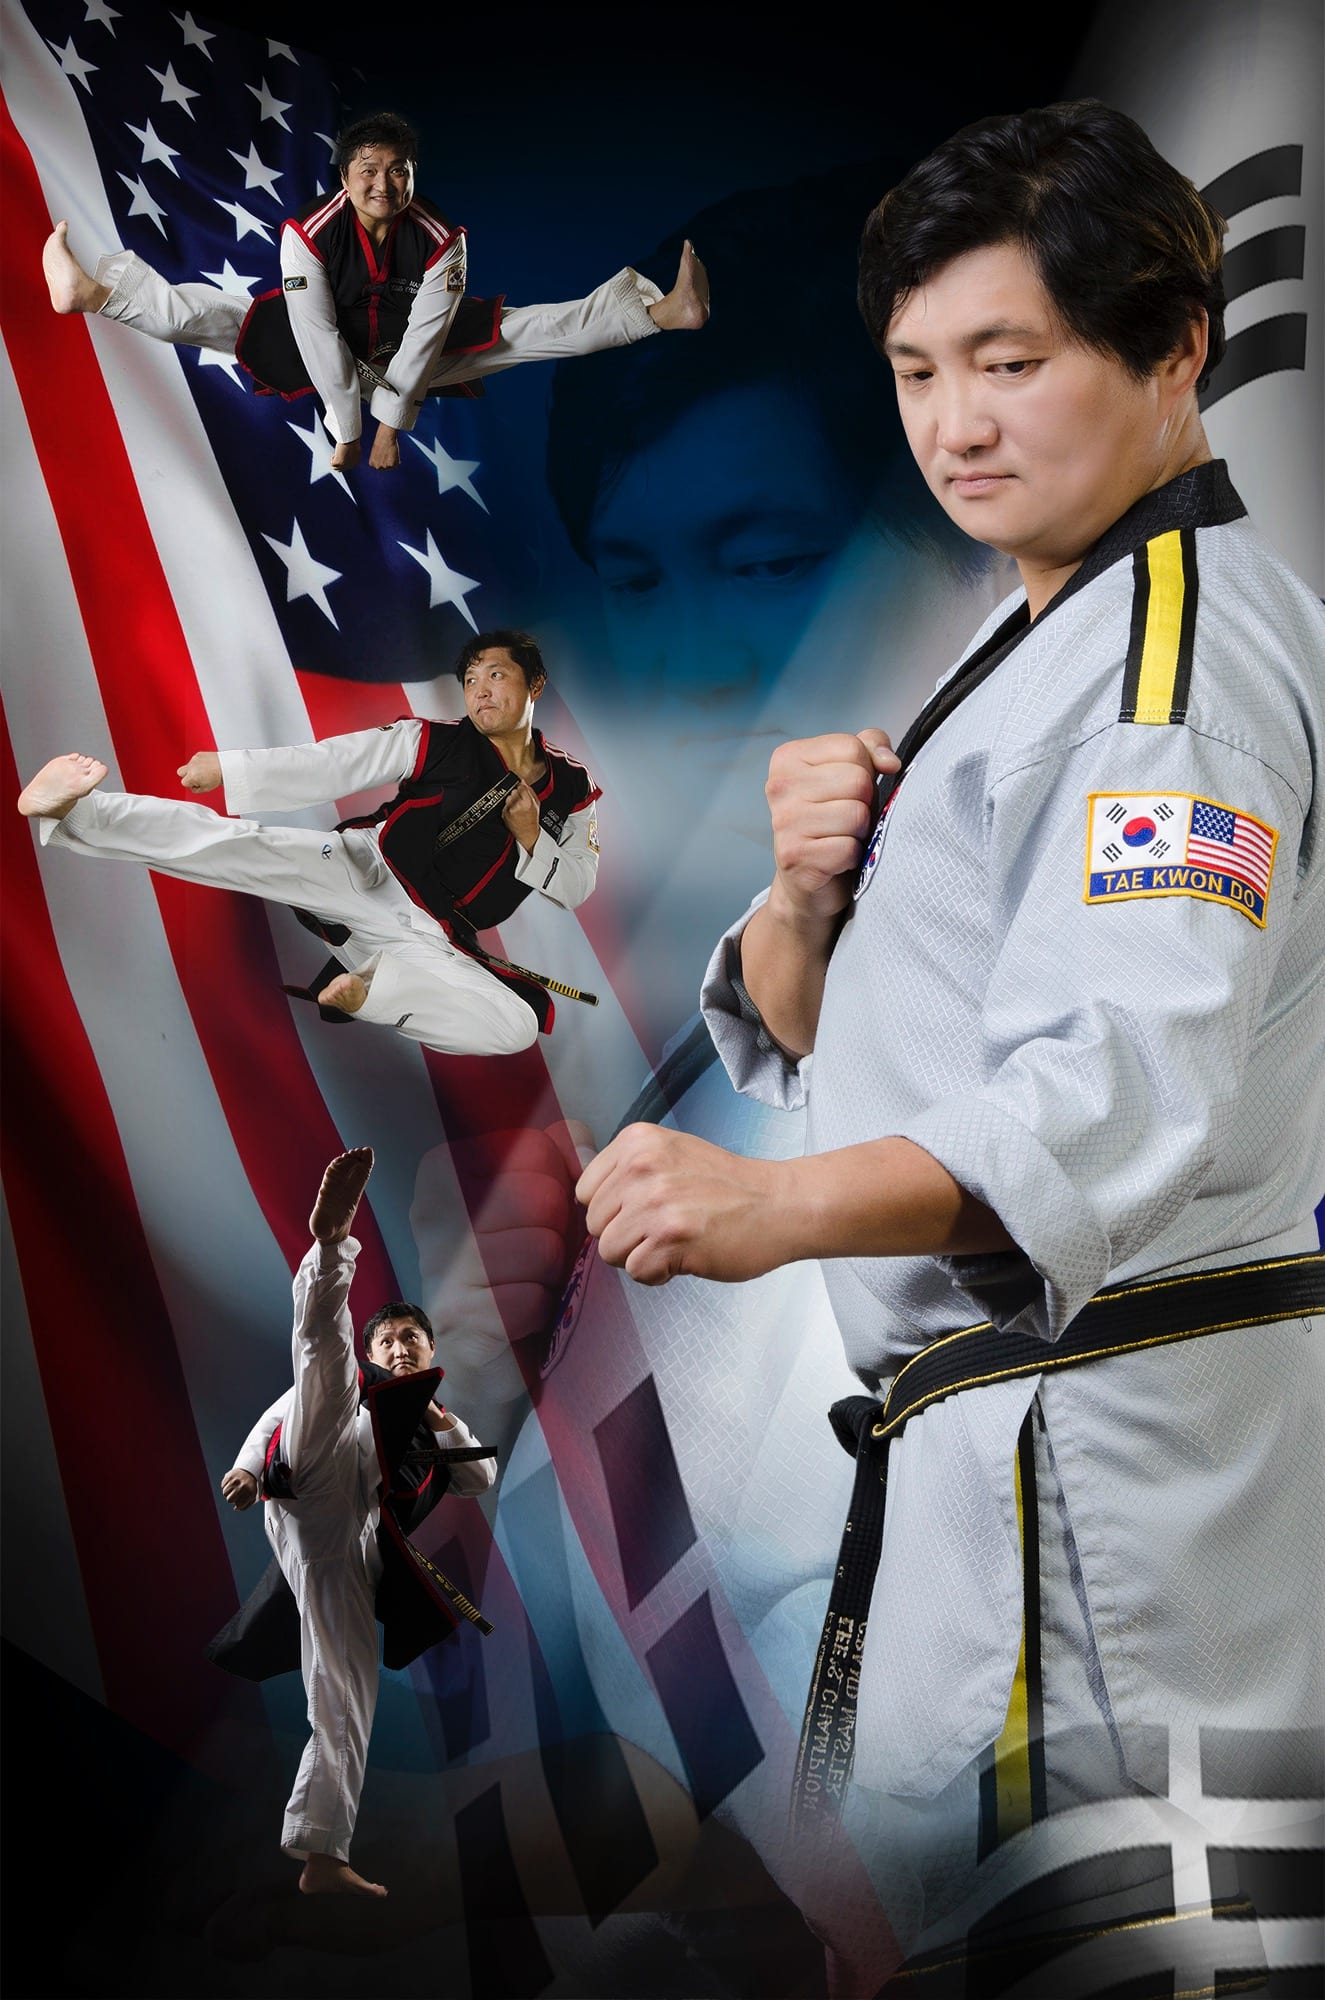 Grand Master. Yong Hyeok Lee in Shoreview - Lee's Champion Taekwondo Academy